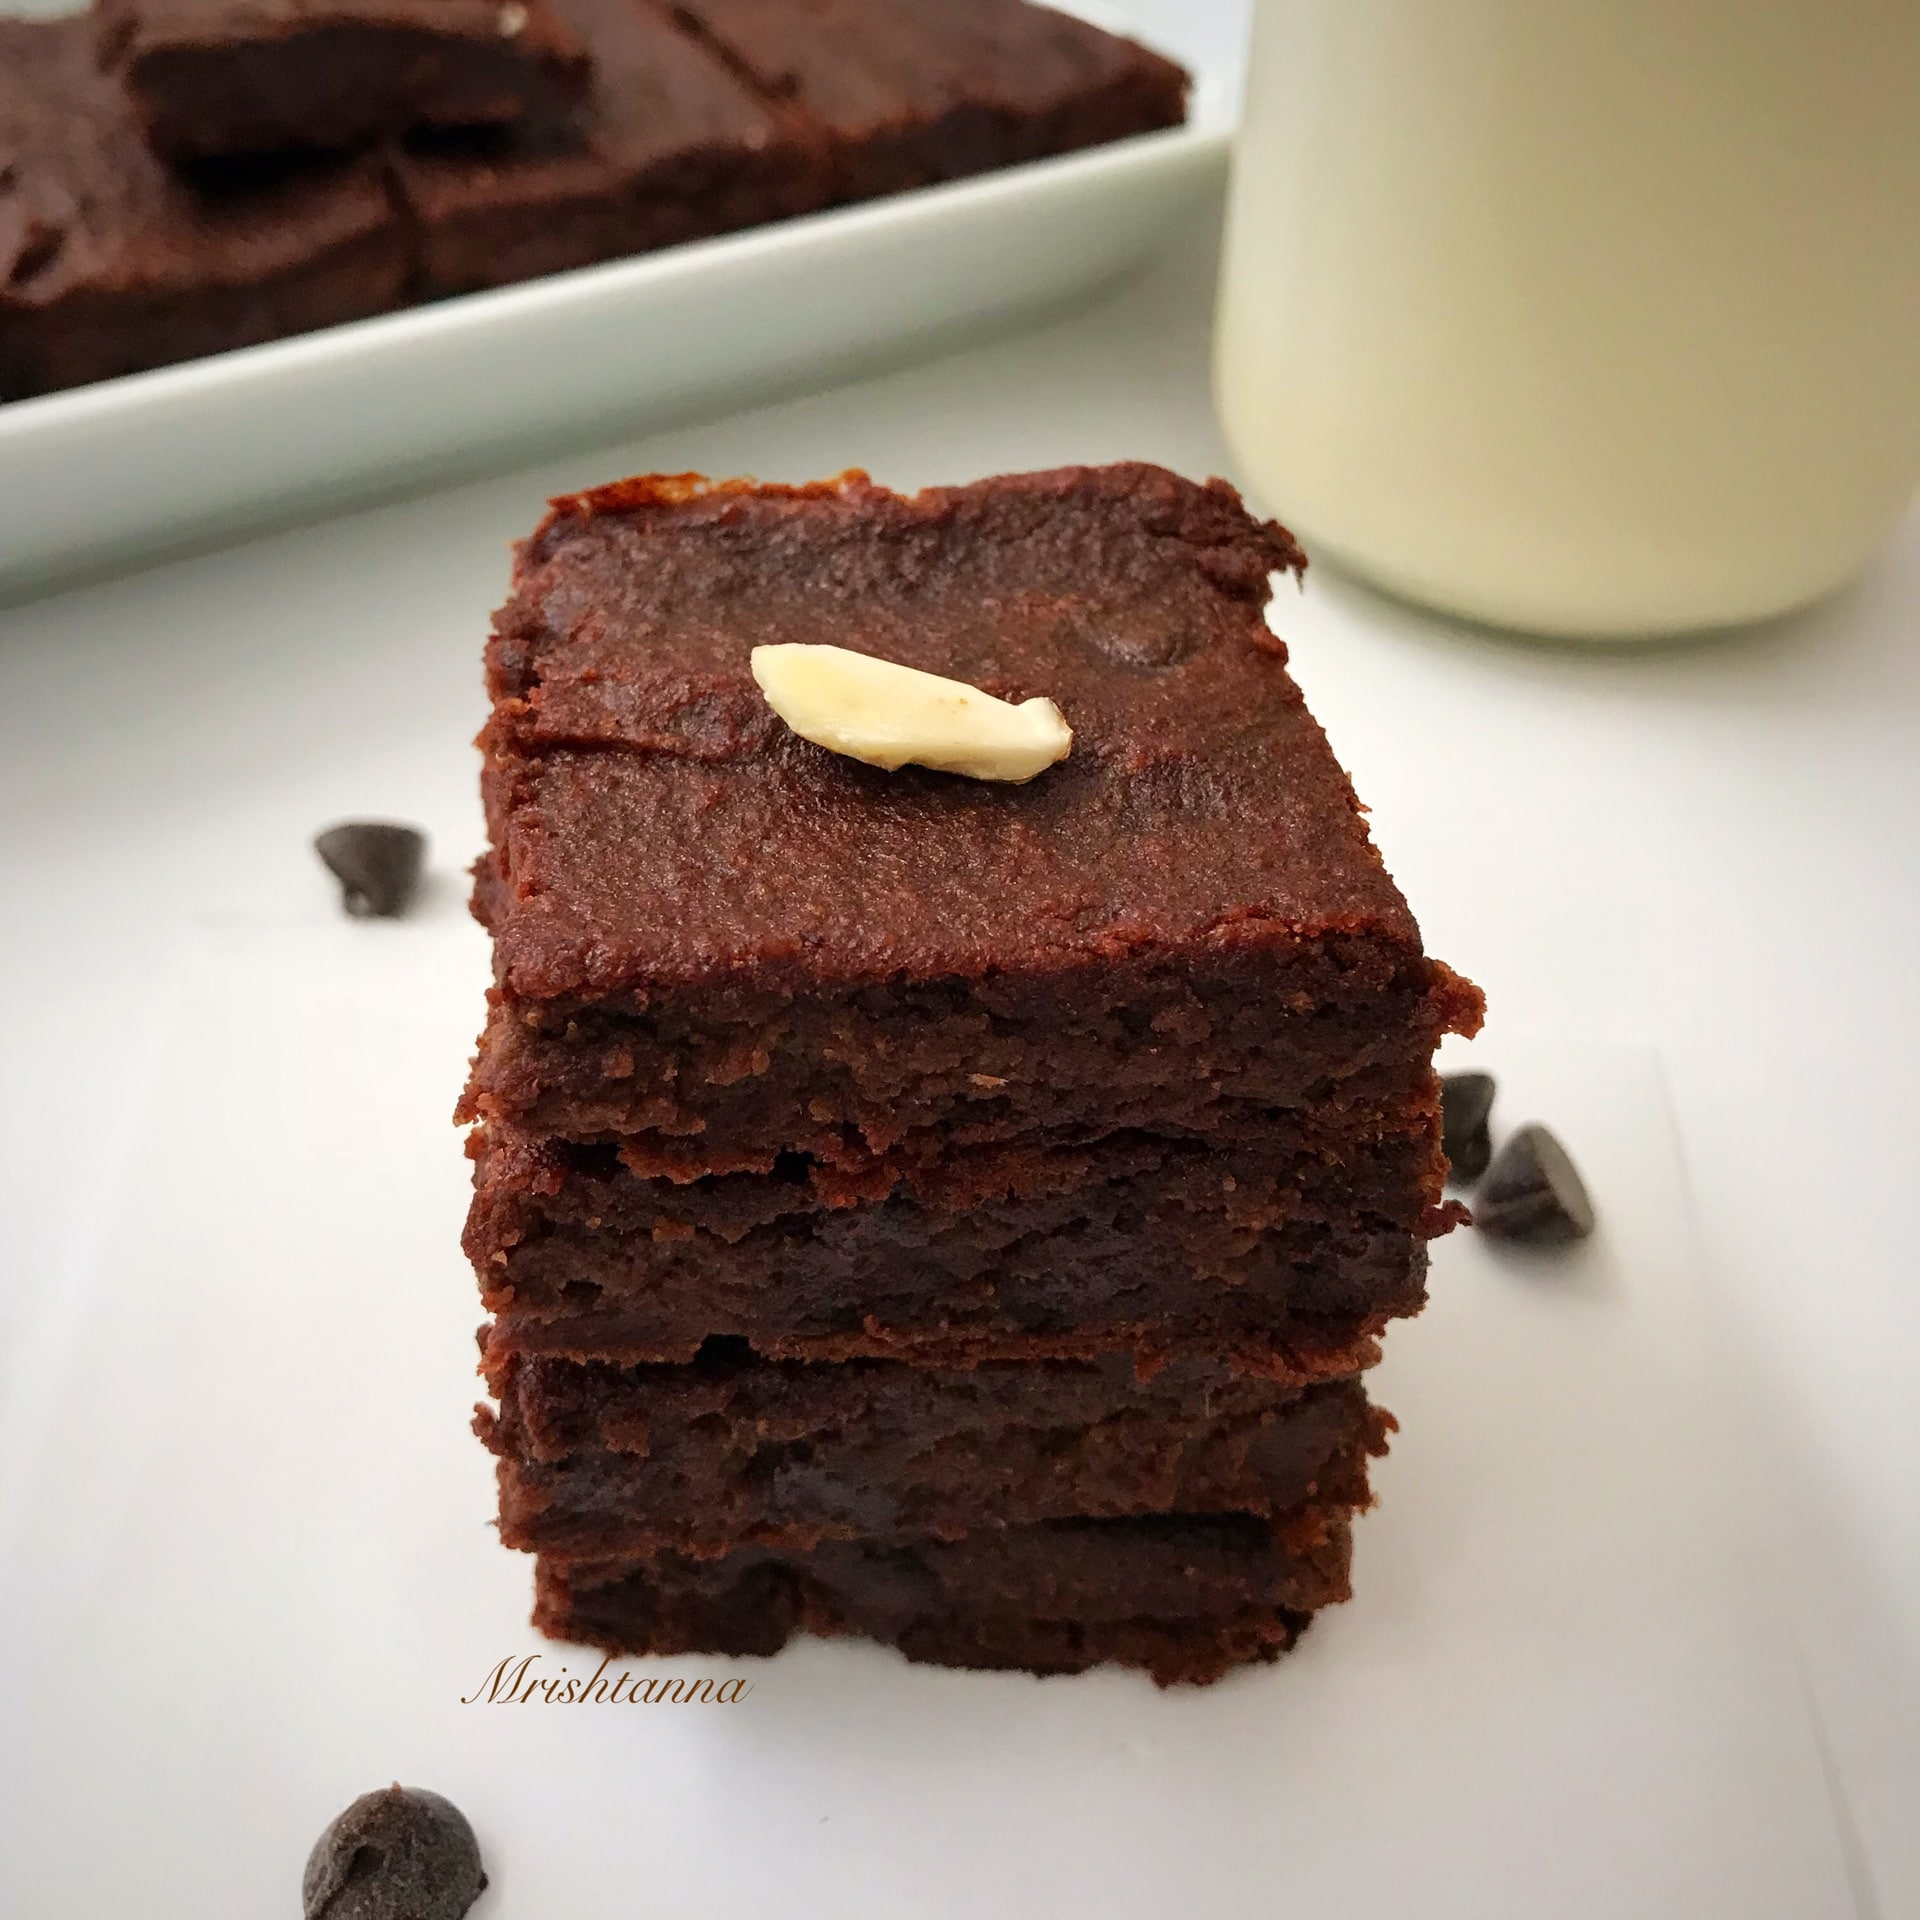 A piece of chocolate vegan brownie on a plate